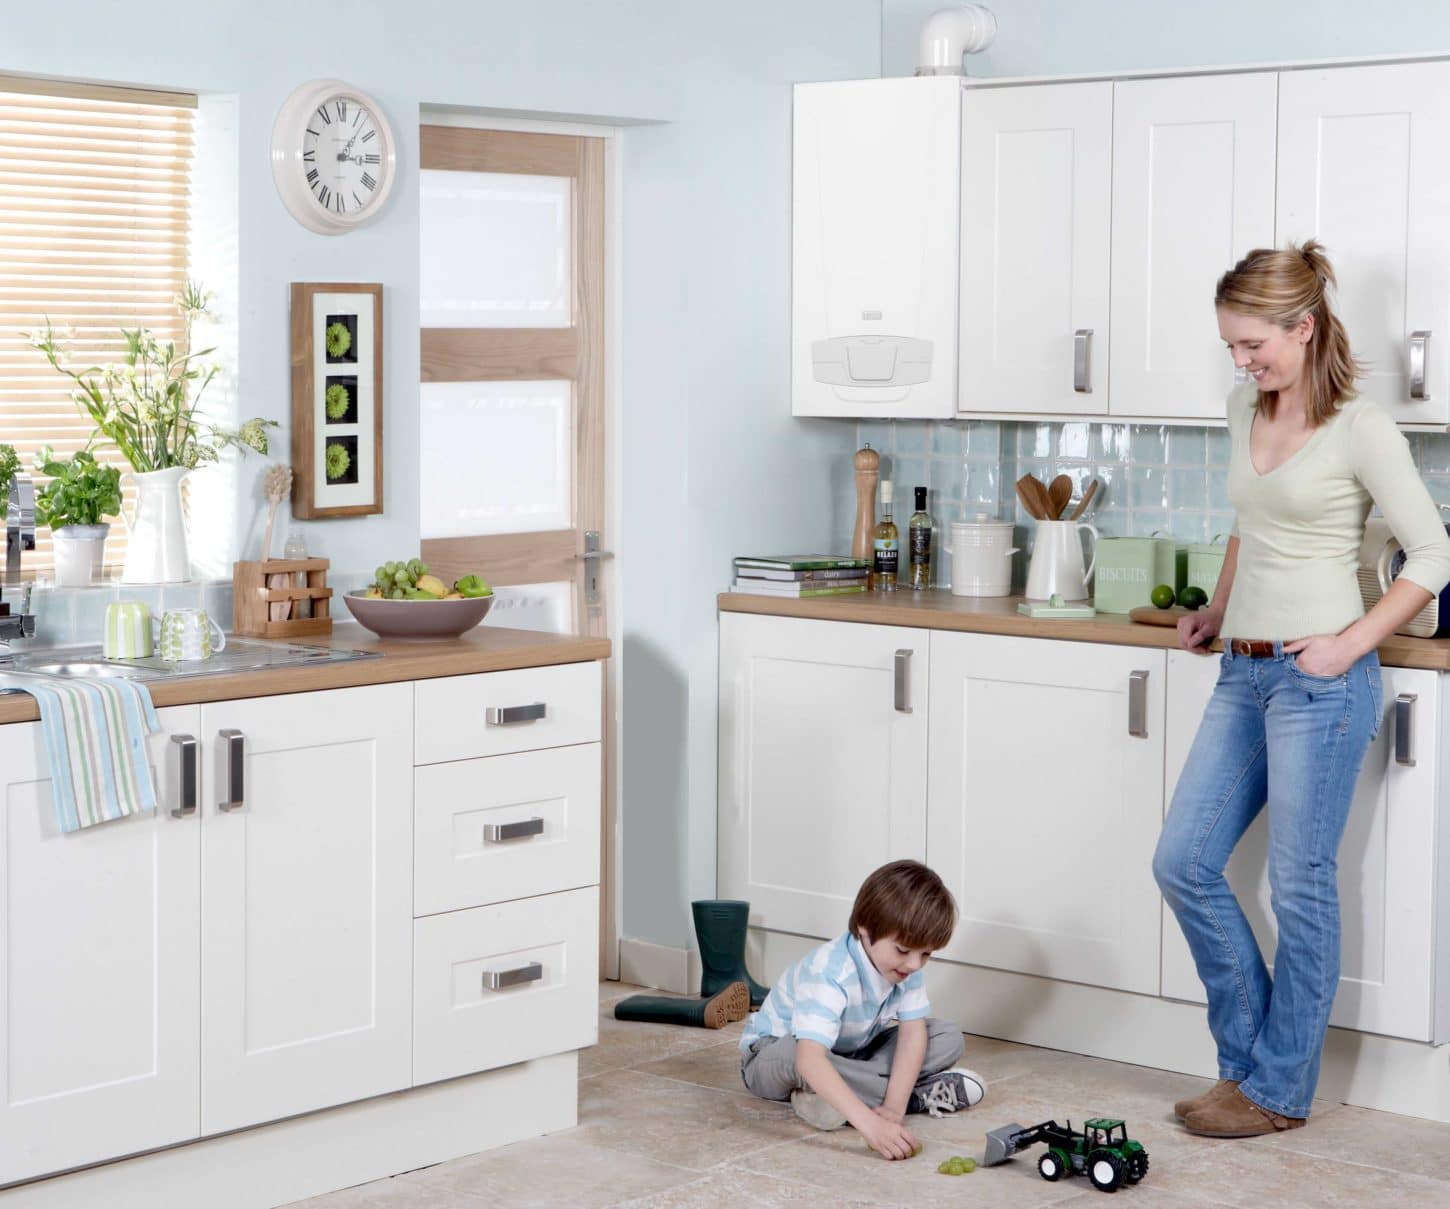 How to Install a Combi Boiler - DIY Combi Boiler Installation Guide